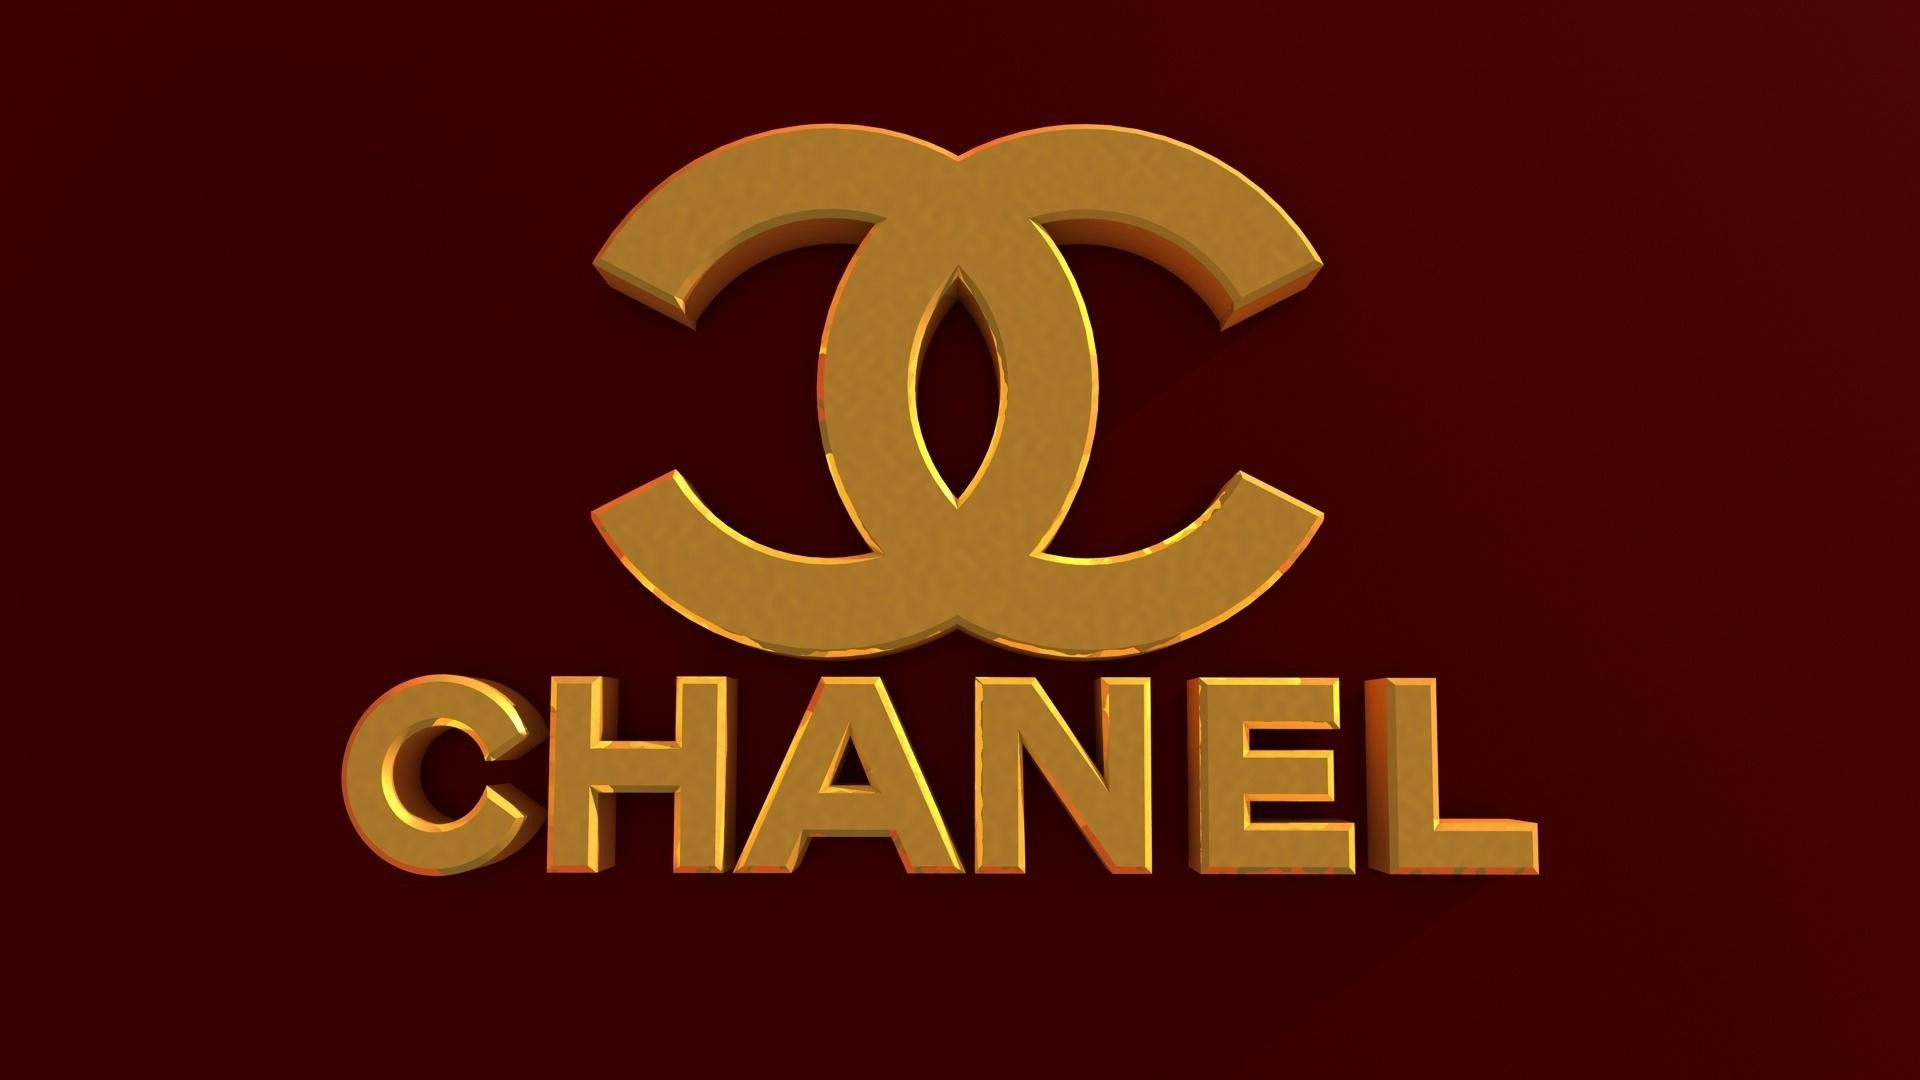 1920x1080 Chanel-logo-HD-1920%C3%971080-wallpaper-wp3403824